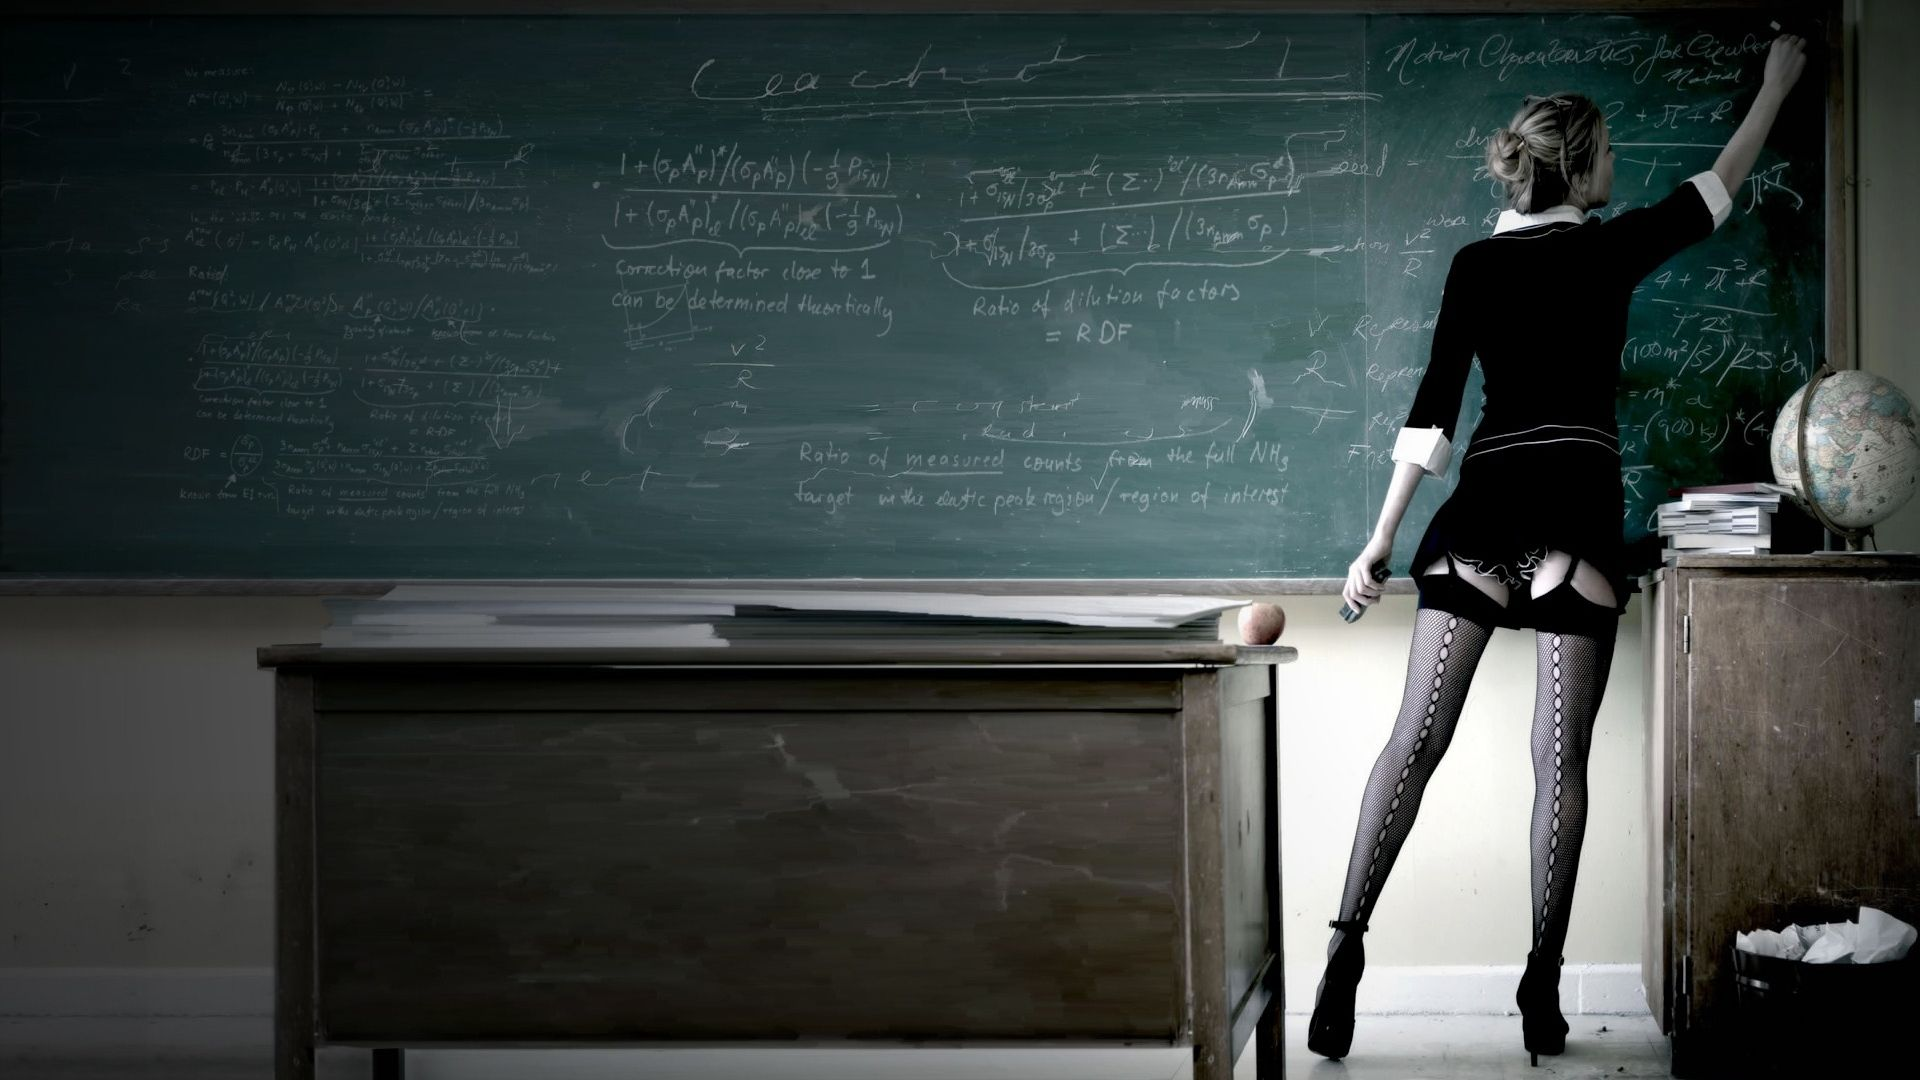 1920x1080 Wallpaper of the Teacher writing her Lesson on the Chalkboard - Imgur